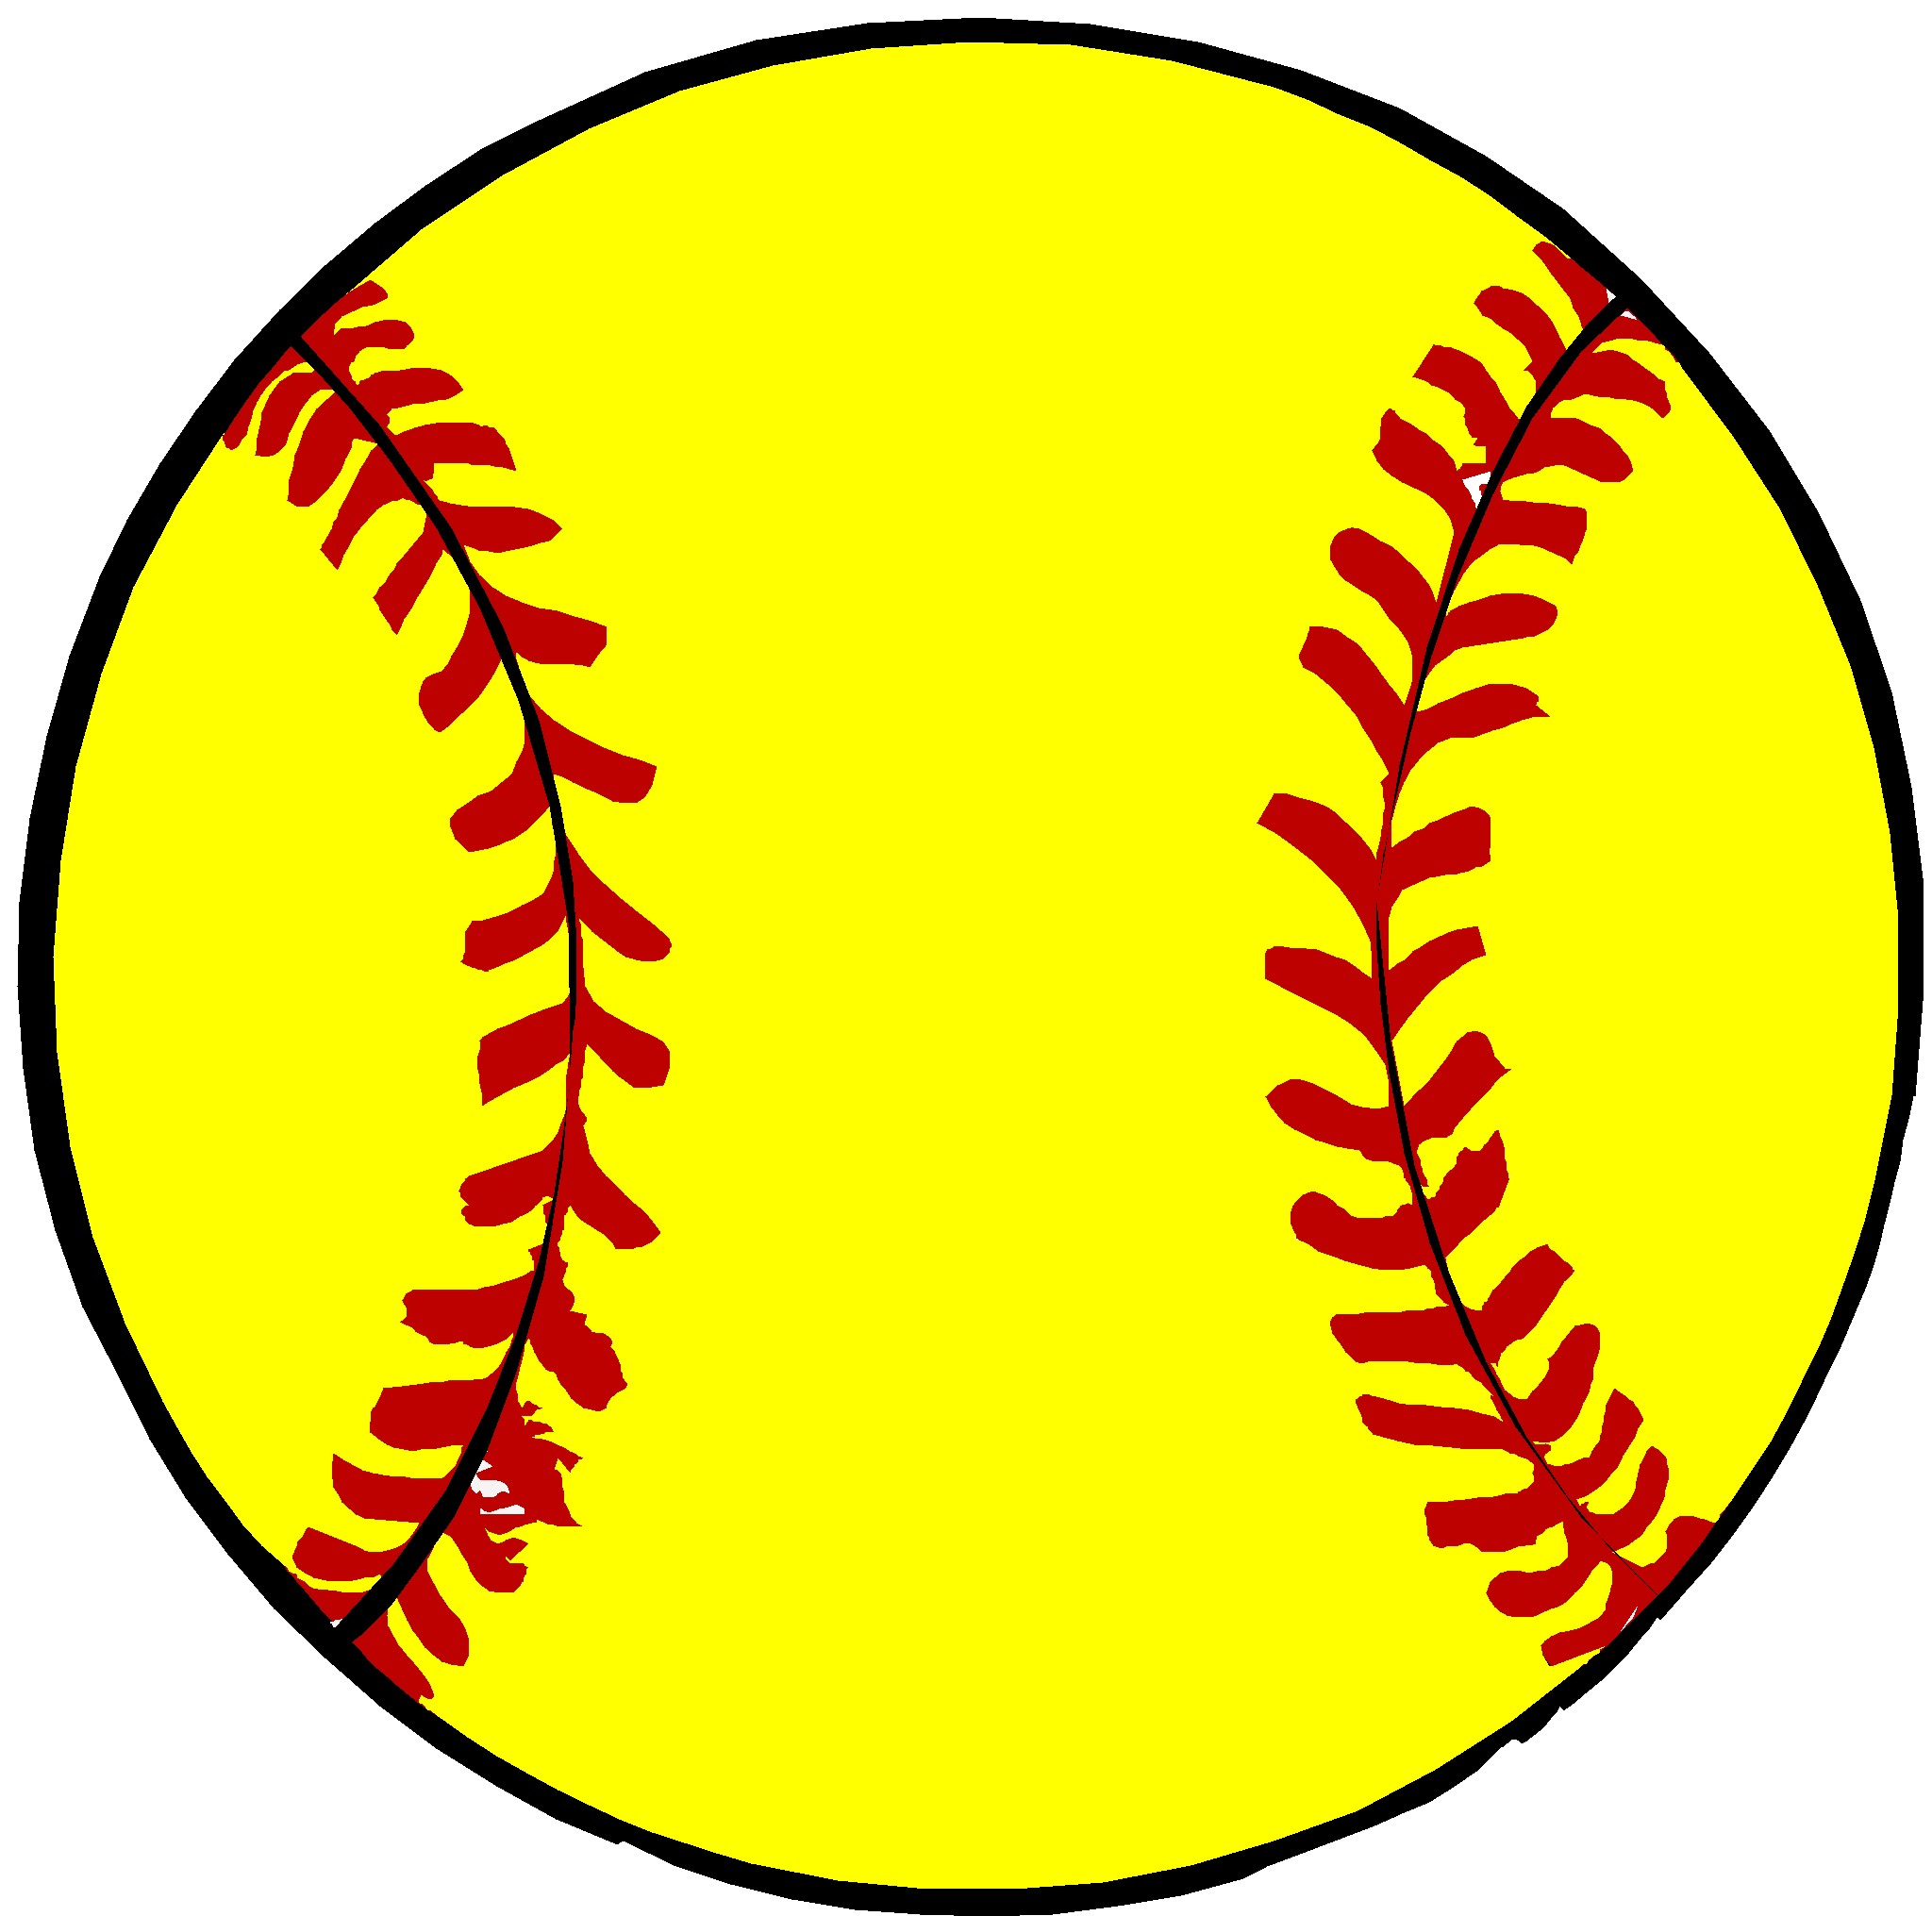 Free Softball Clipart - Cliparts.co